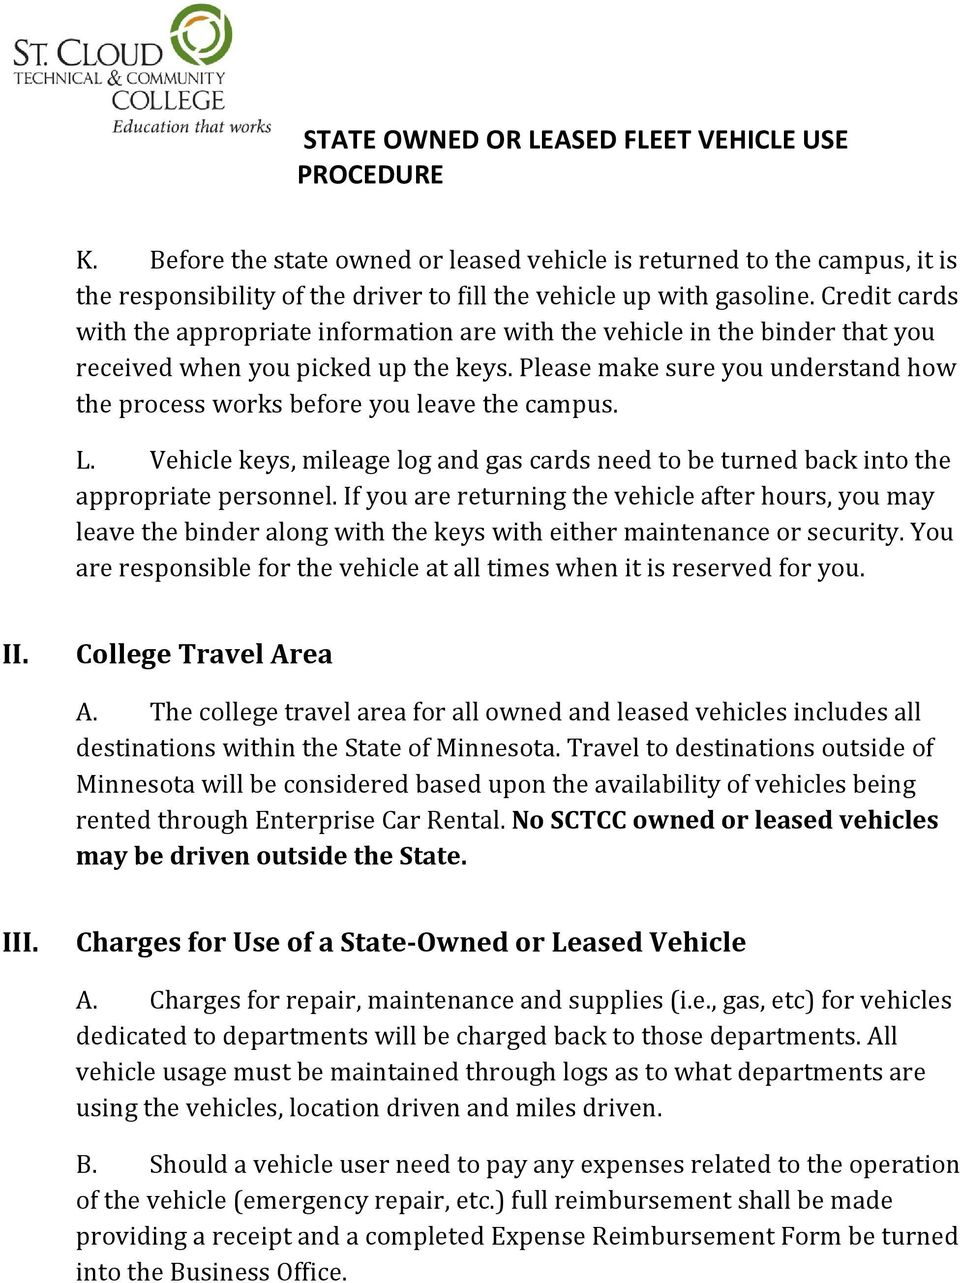 Please make sure you understand how the process works before you leave the campus. L. Vehicle keys, mileage log and gas cards need to be turned back into the appropriate personnel.